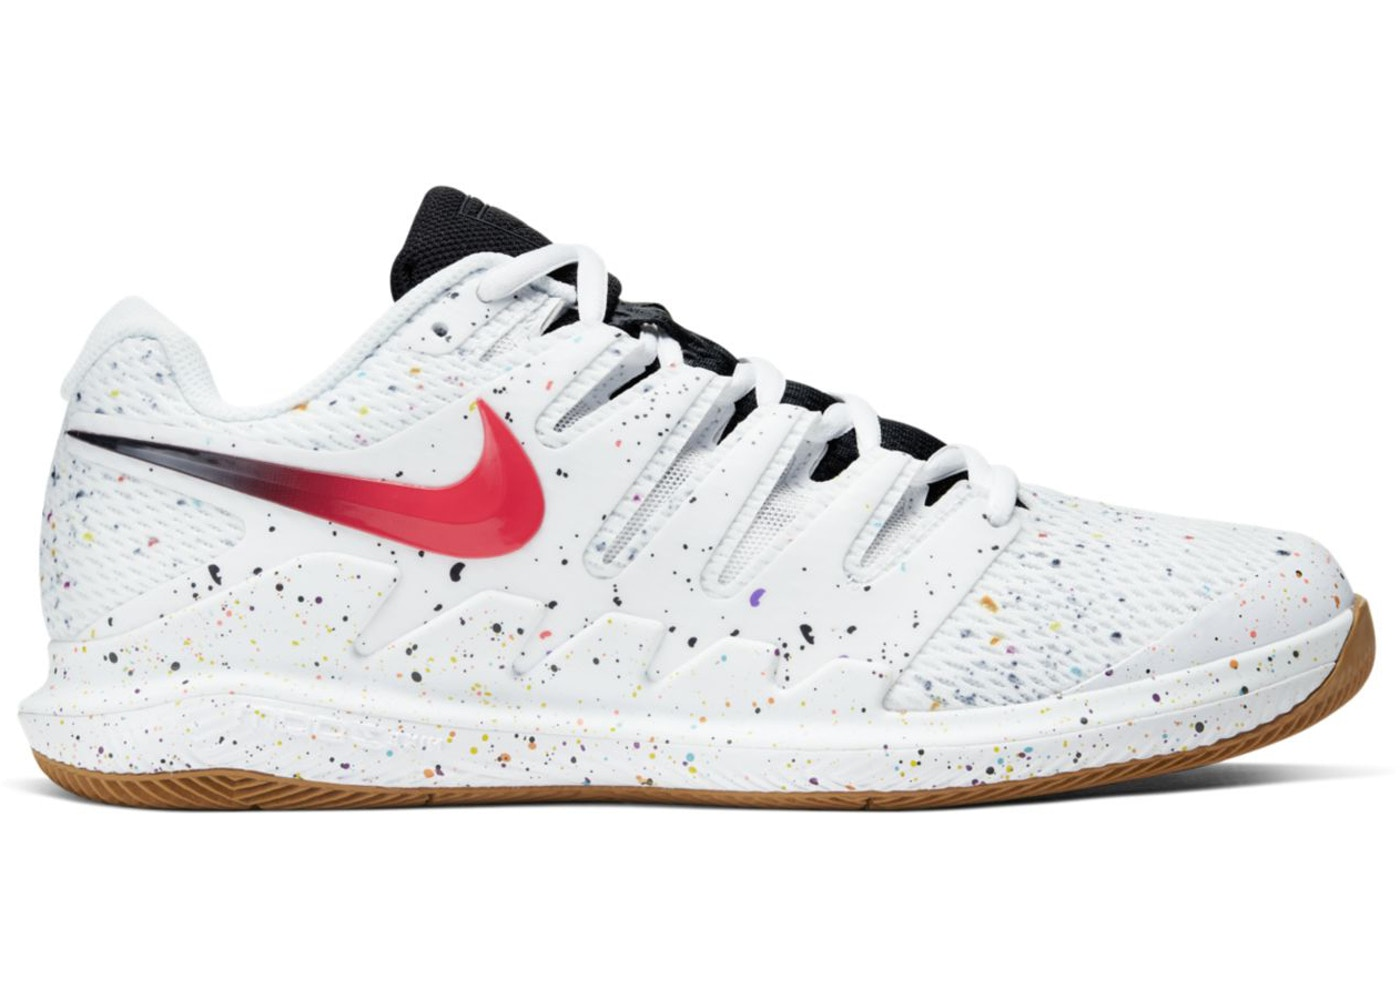 Nikecourt Air Zoom Vapor X White Oracle Aqua Aa8030 108